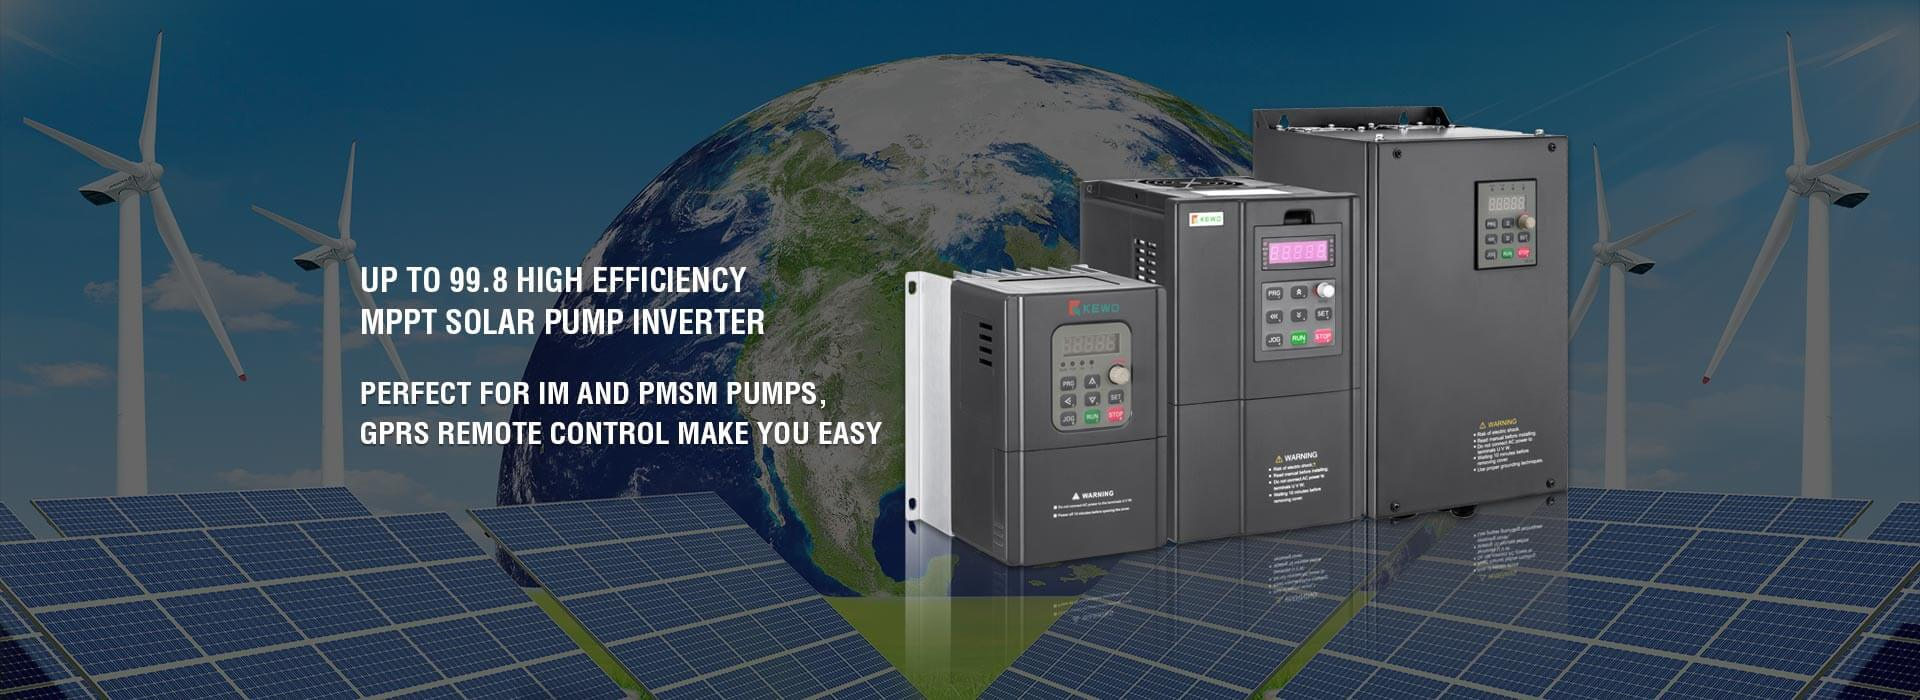 Solar pump inverter Factory